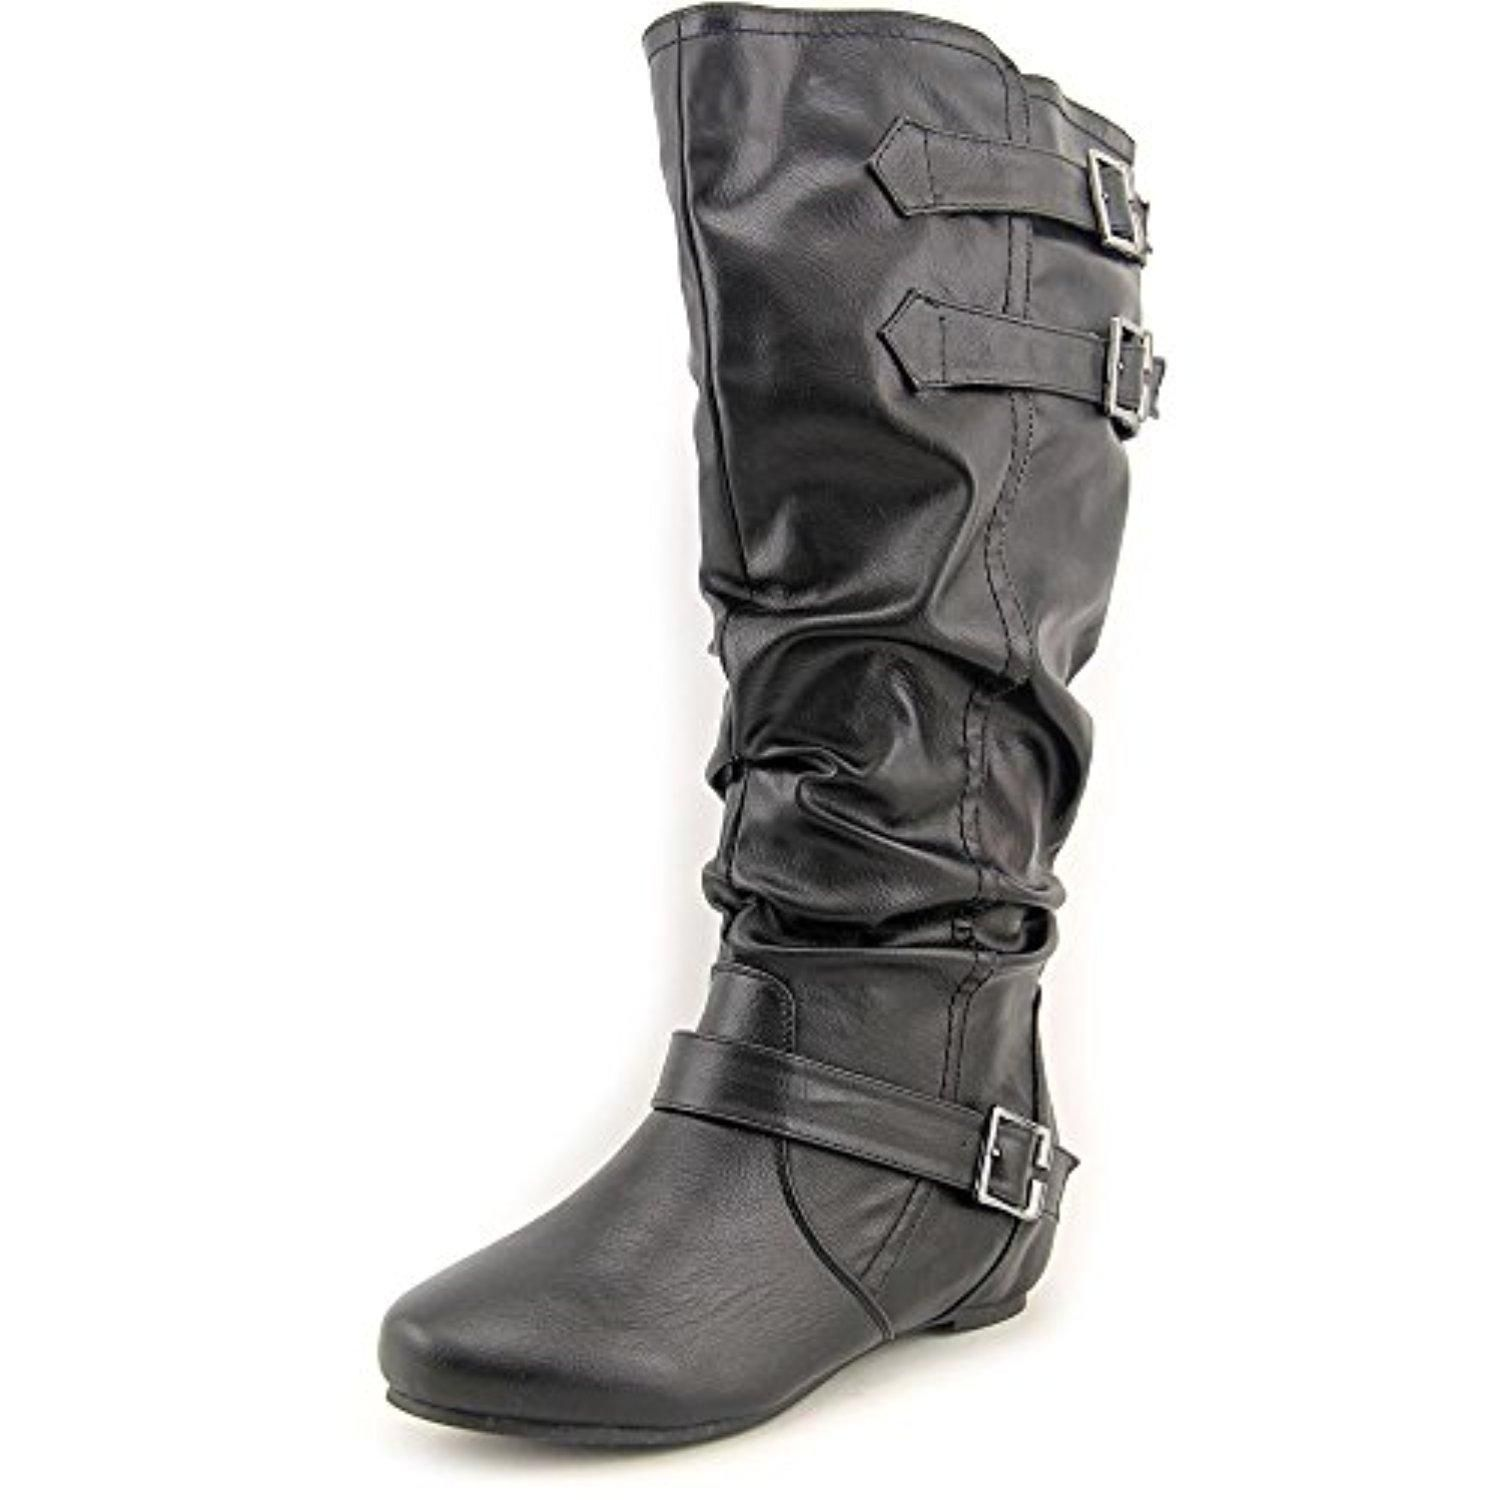 Journee Collection Tiffany Wide Calf Women US 8.5 Black Knee High Boot - Brought to you by Avarsha.com